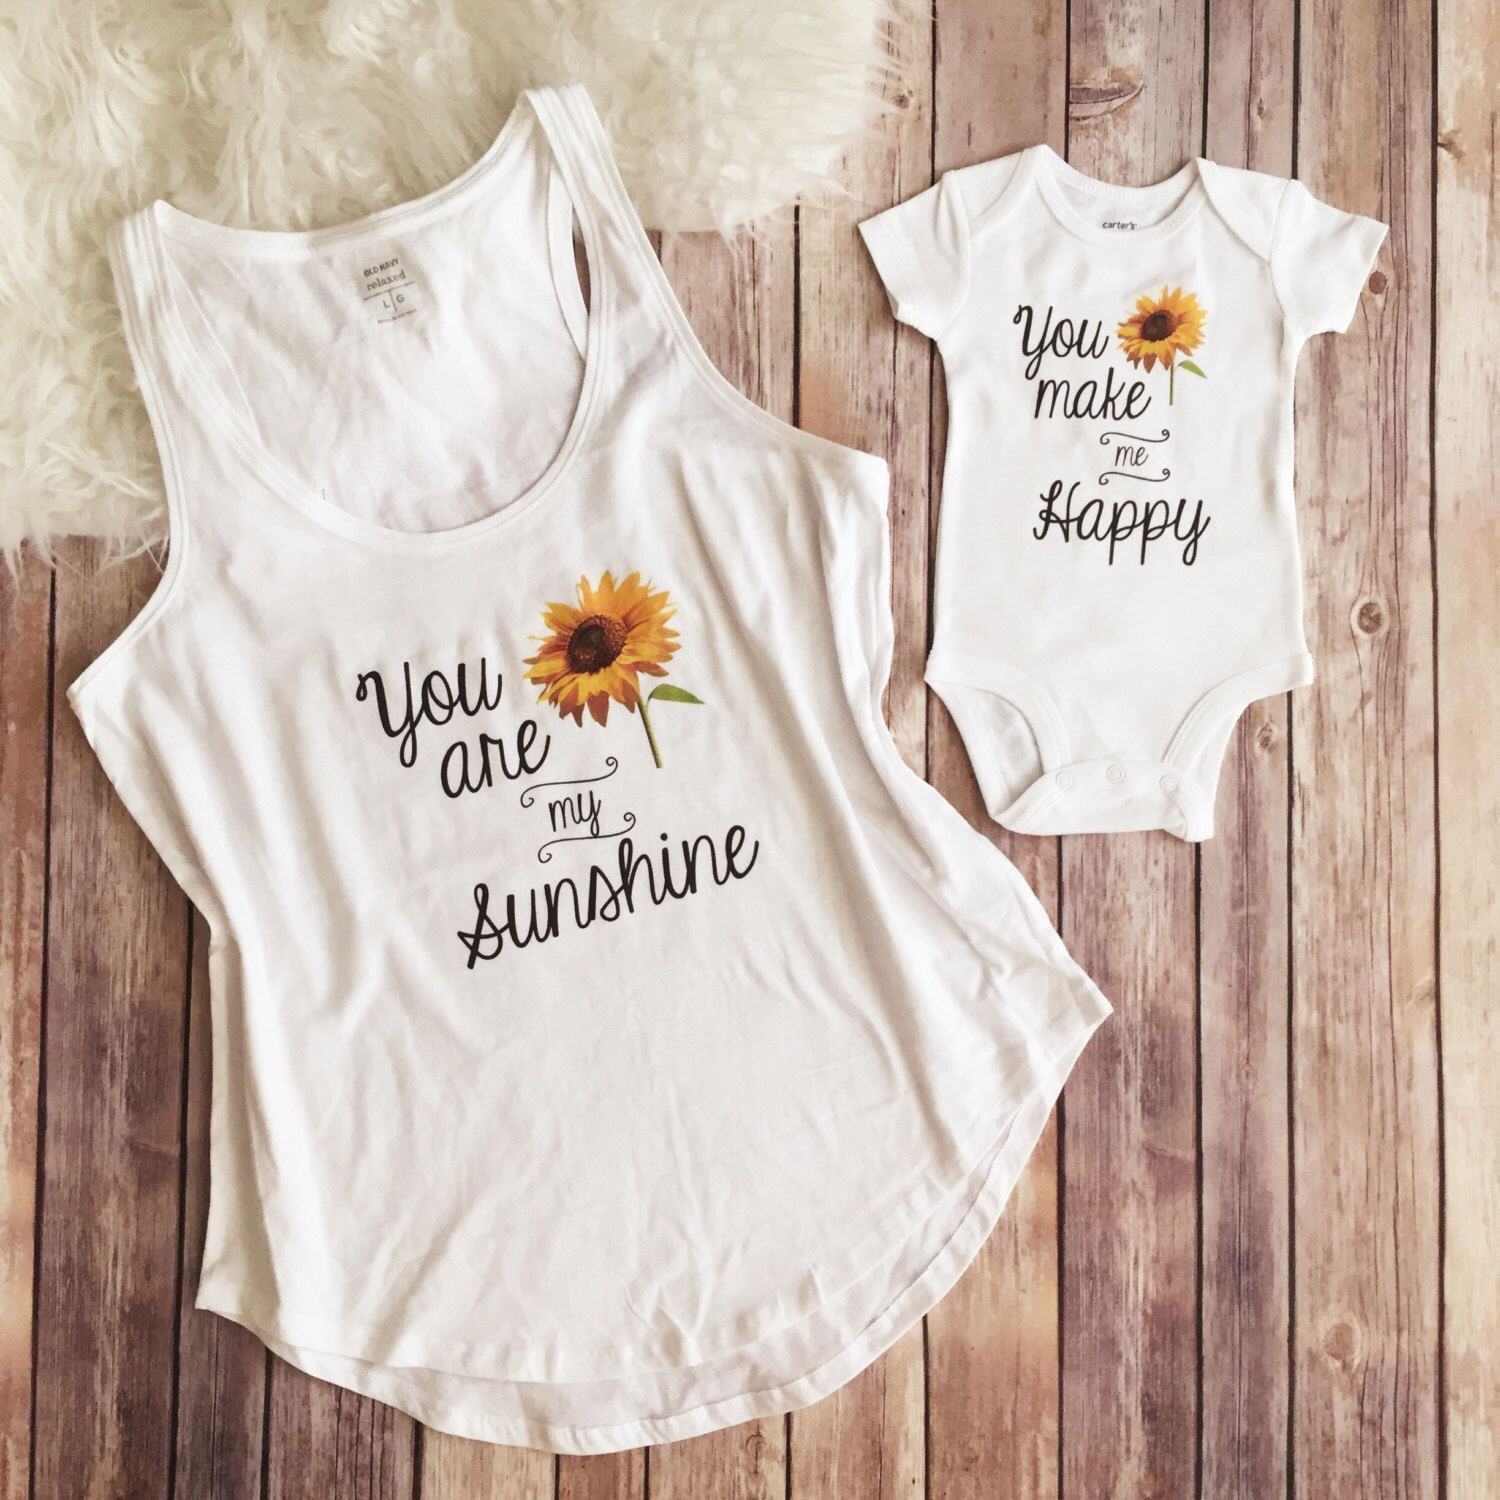 Mommy and me matching outfit You are my sunshine Shirt Mother and